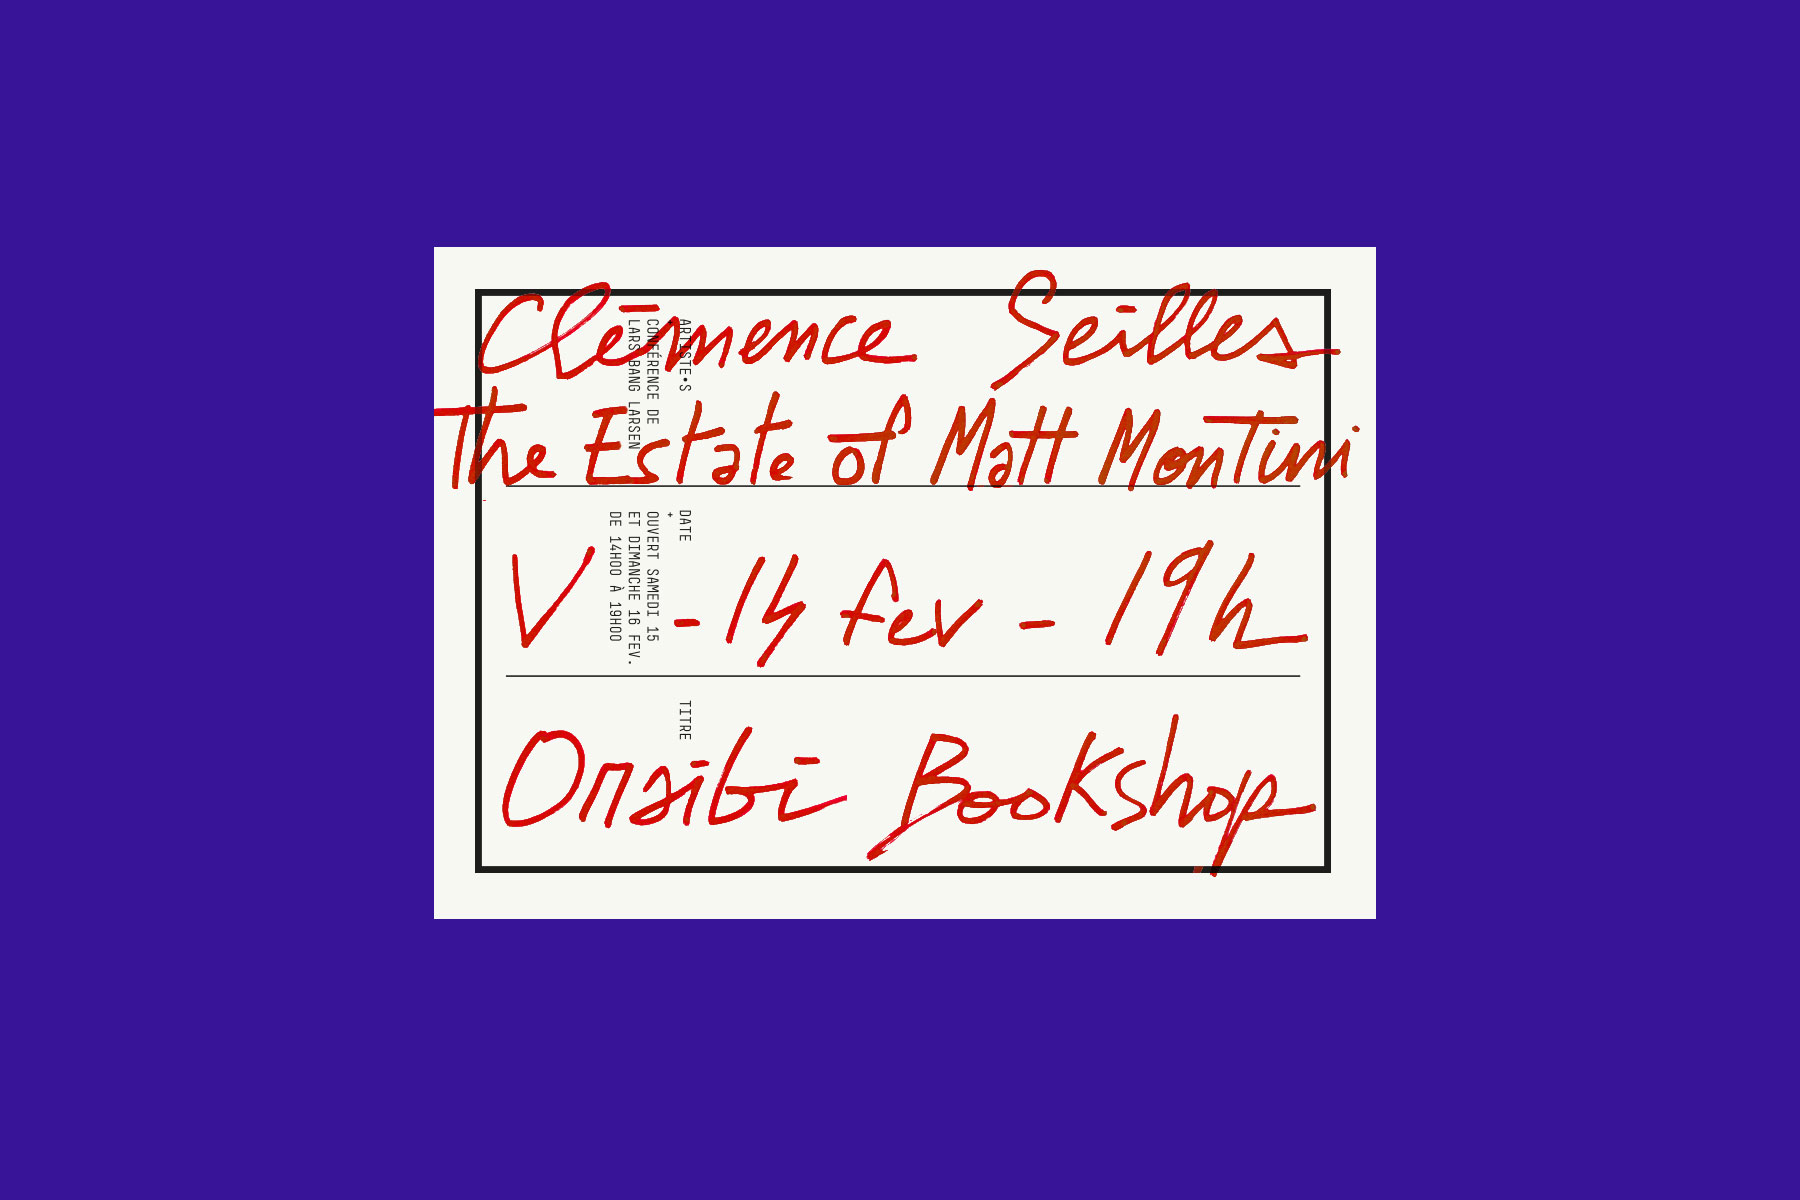 rosabrux_oraibi_bookshop_clemence_seilles_the_estate_of_matt_montini_lars_bang_larsen_yann_chateigne_flyer_clovis_duran